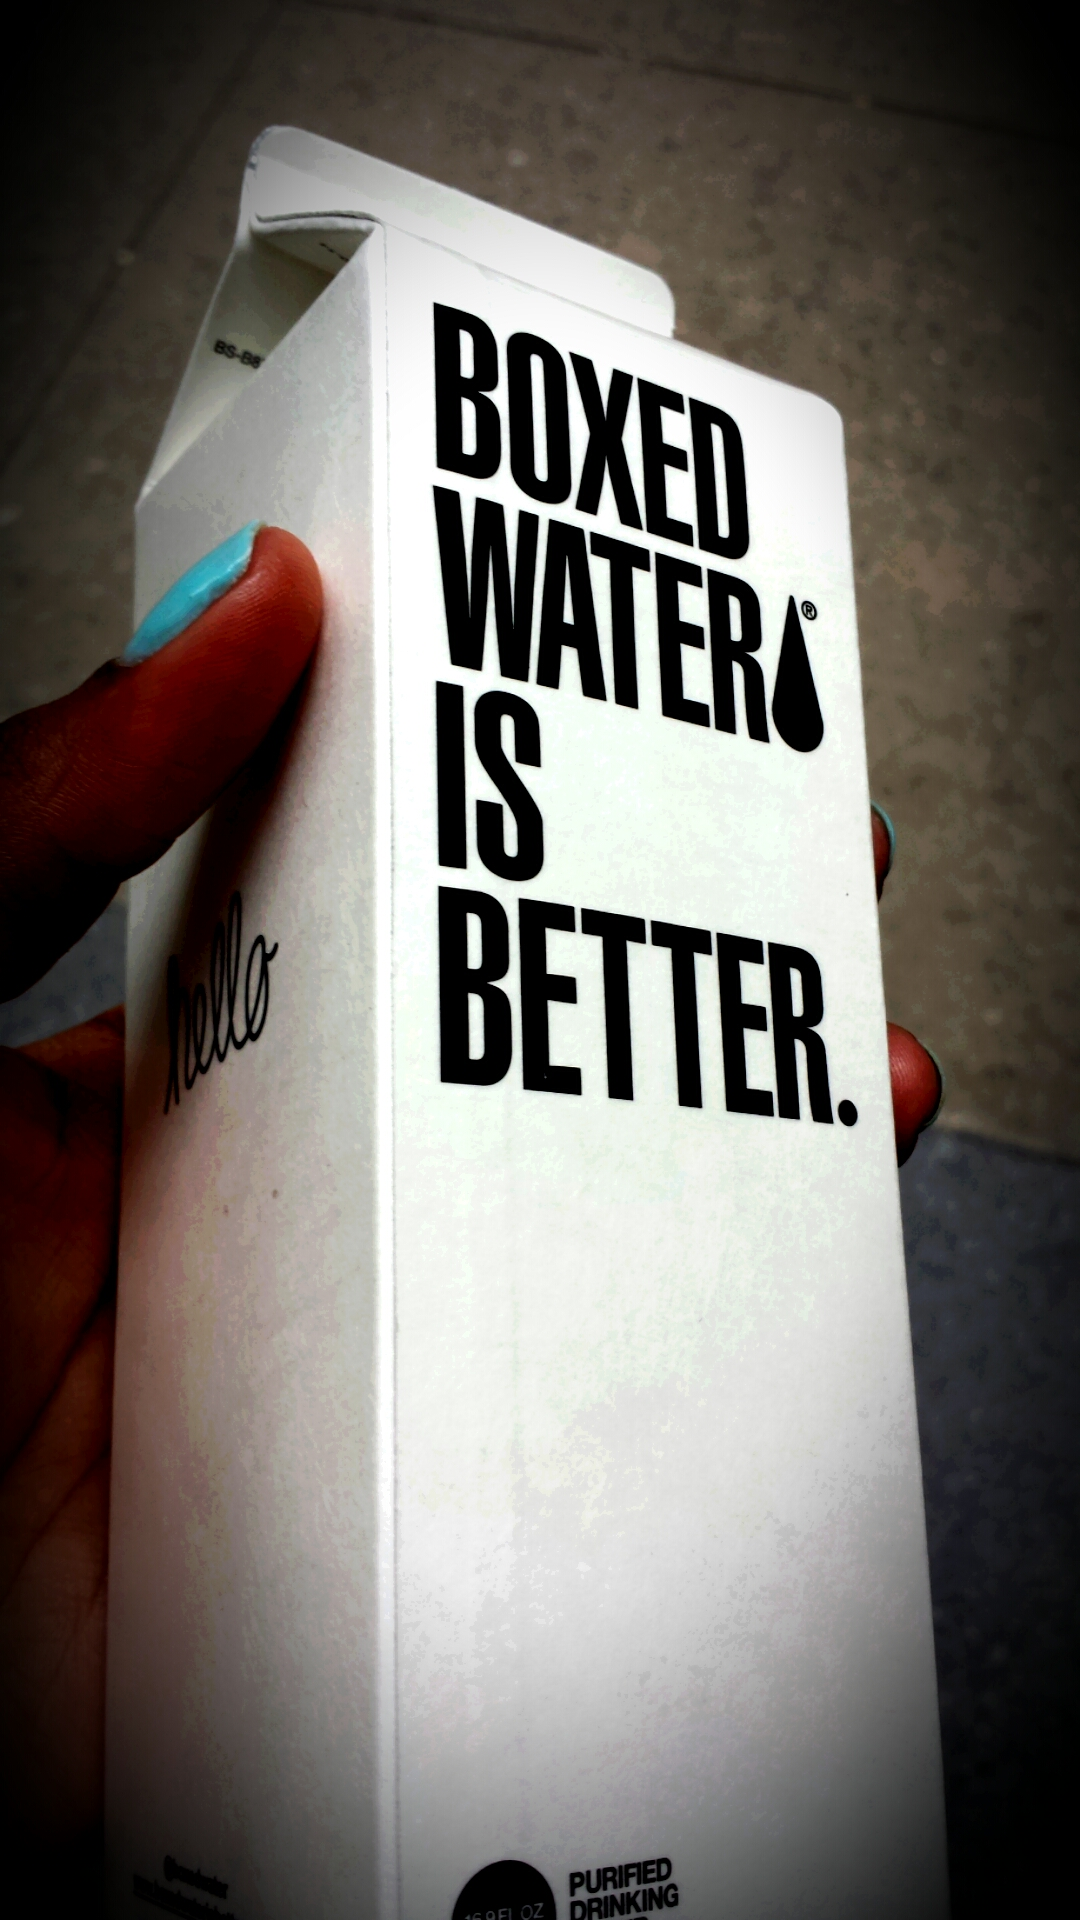 Boxed Water?